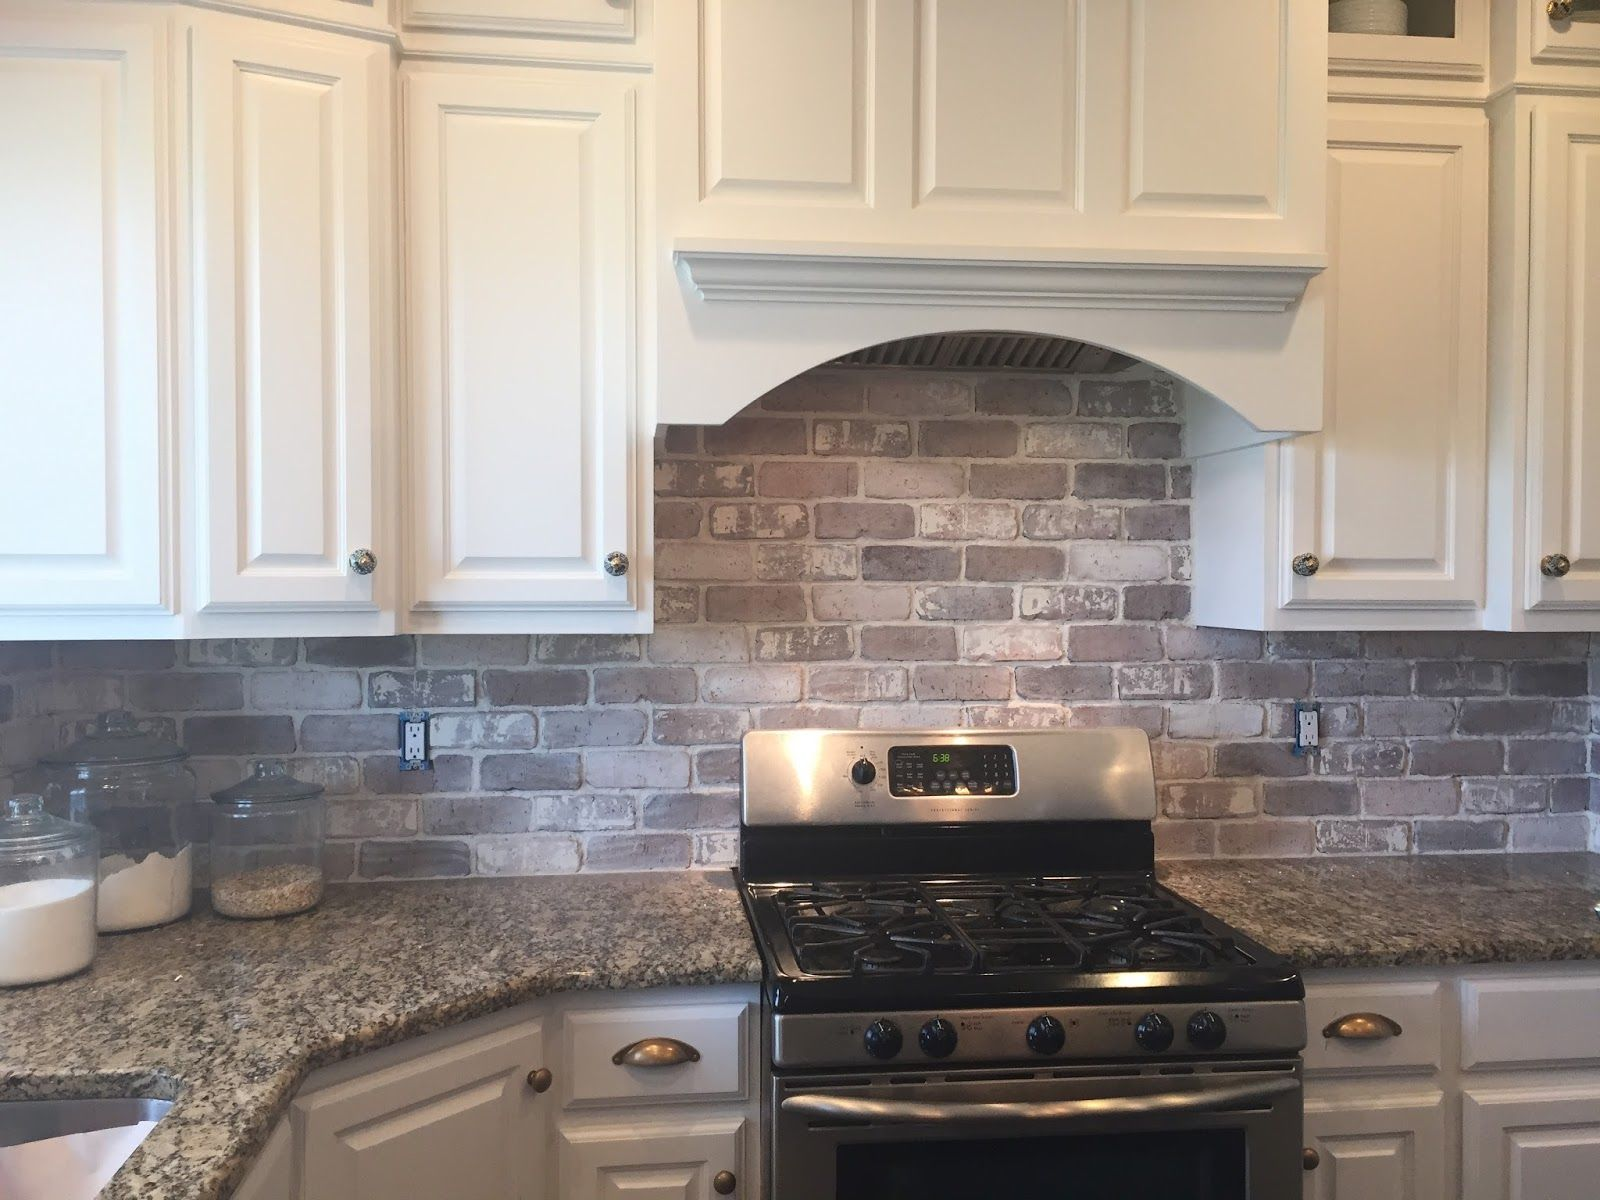 brick backsplash backsplash ideas kitchen tile diy kitchen kitchen